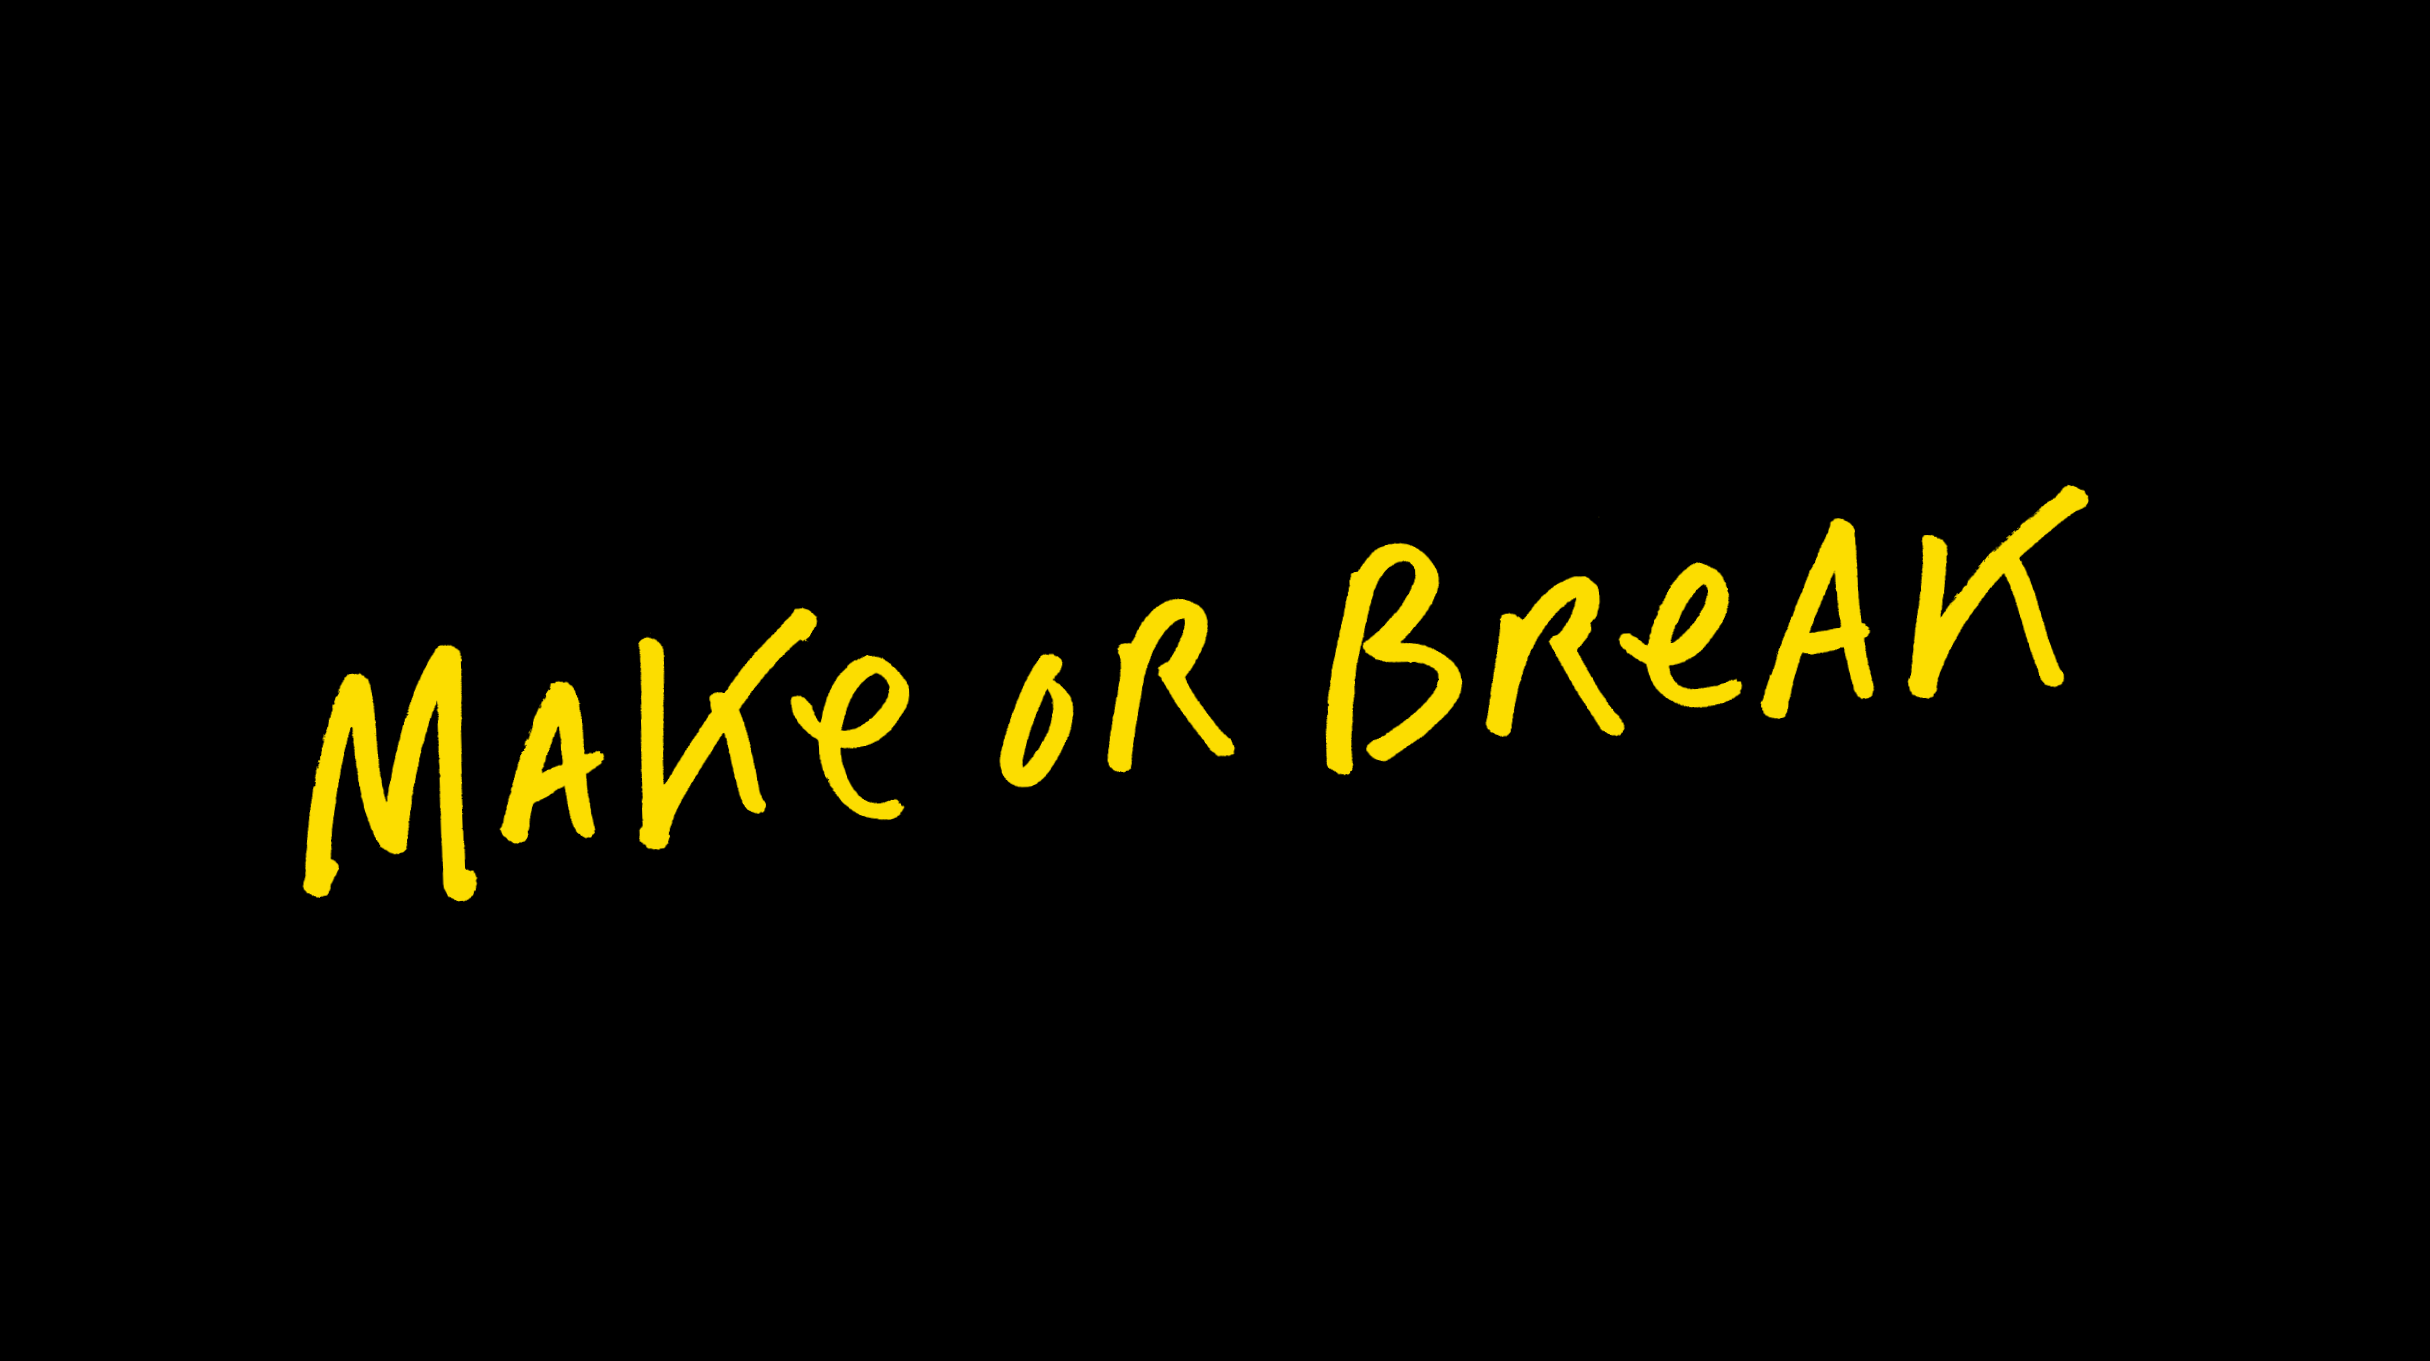 Make or Break handwritten